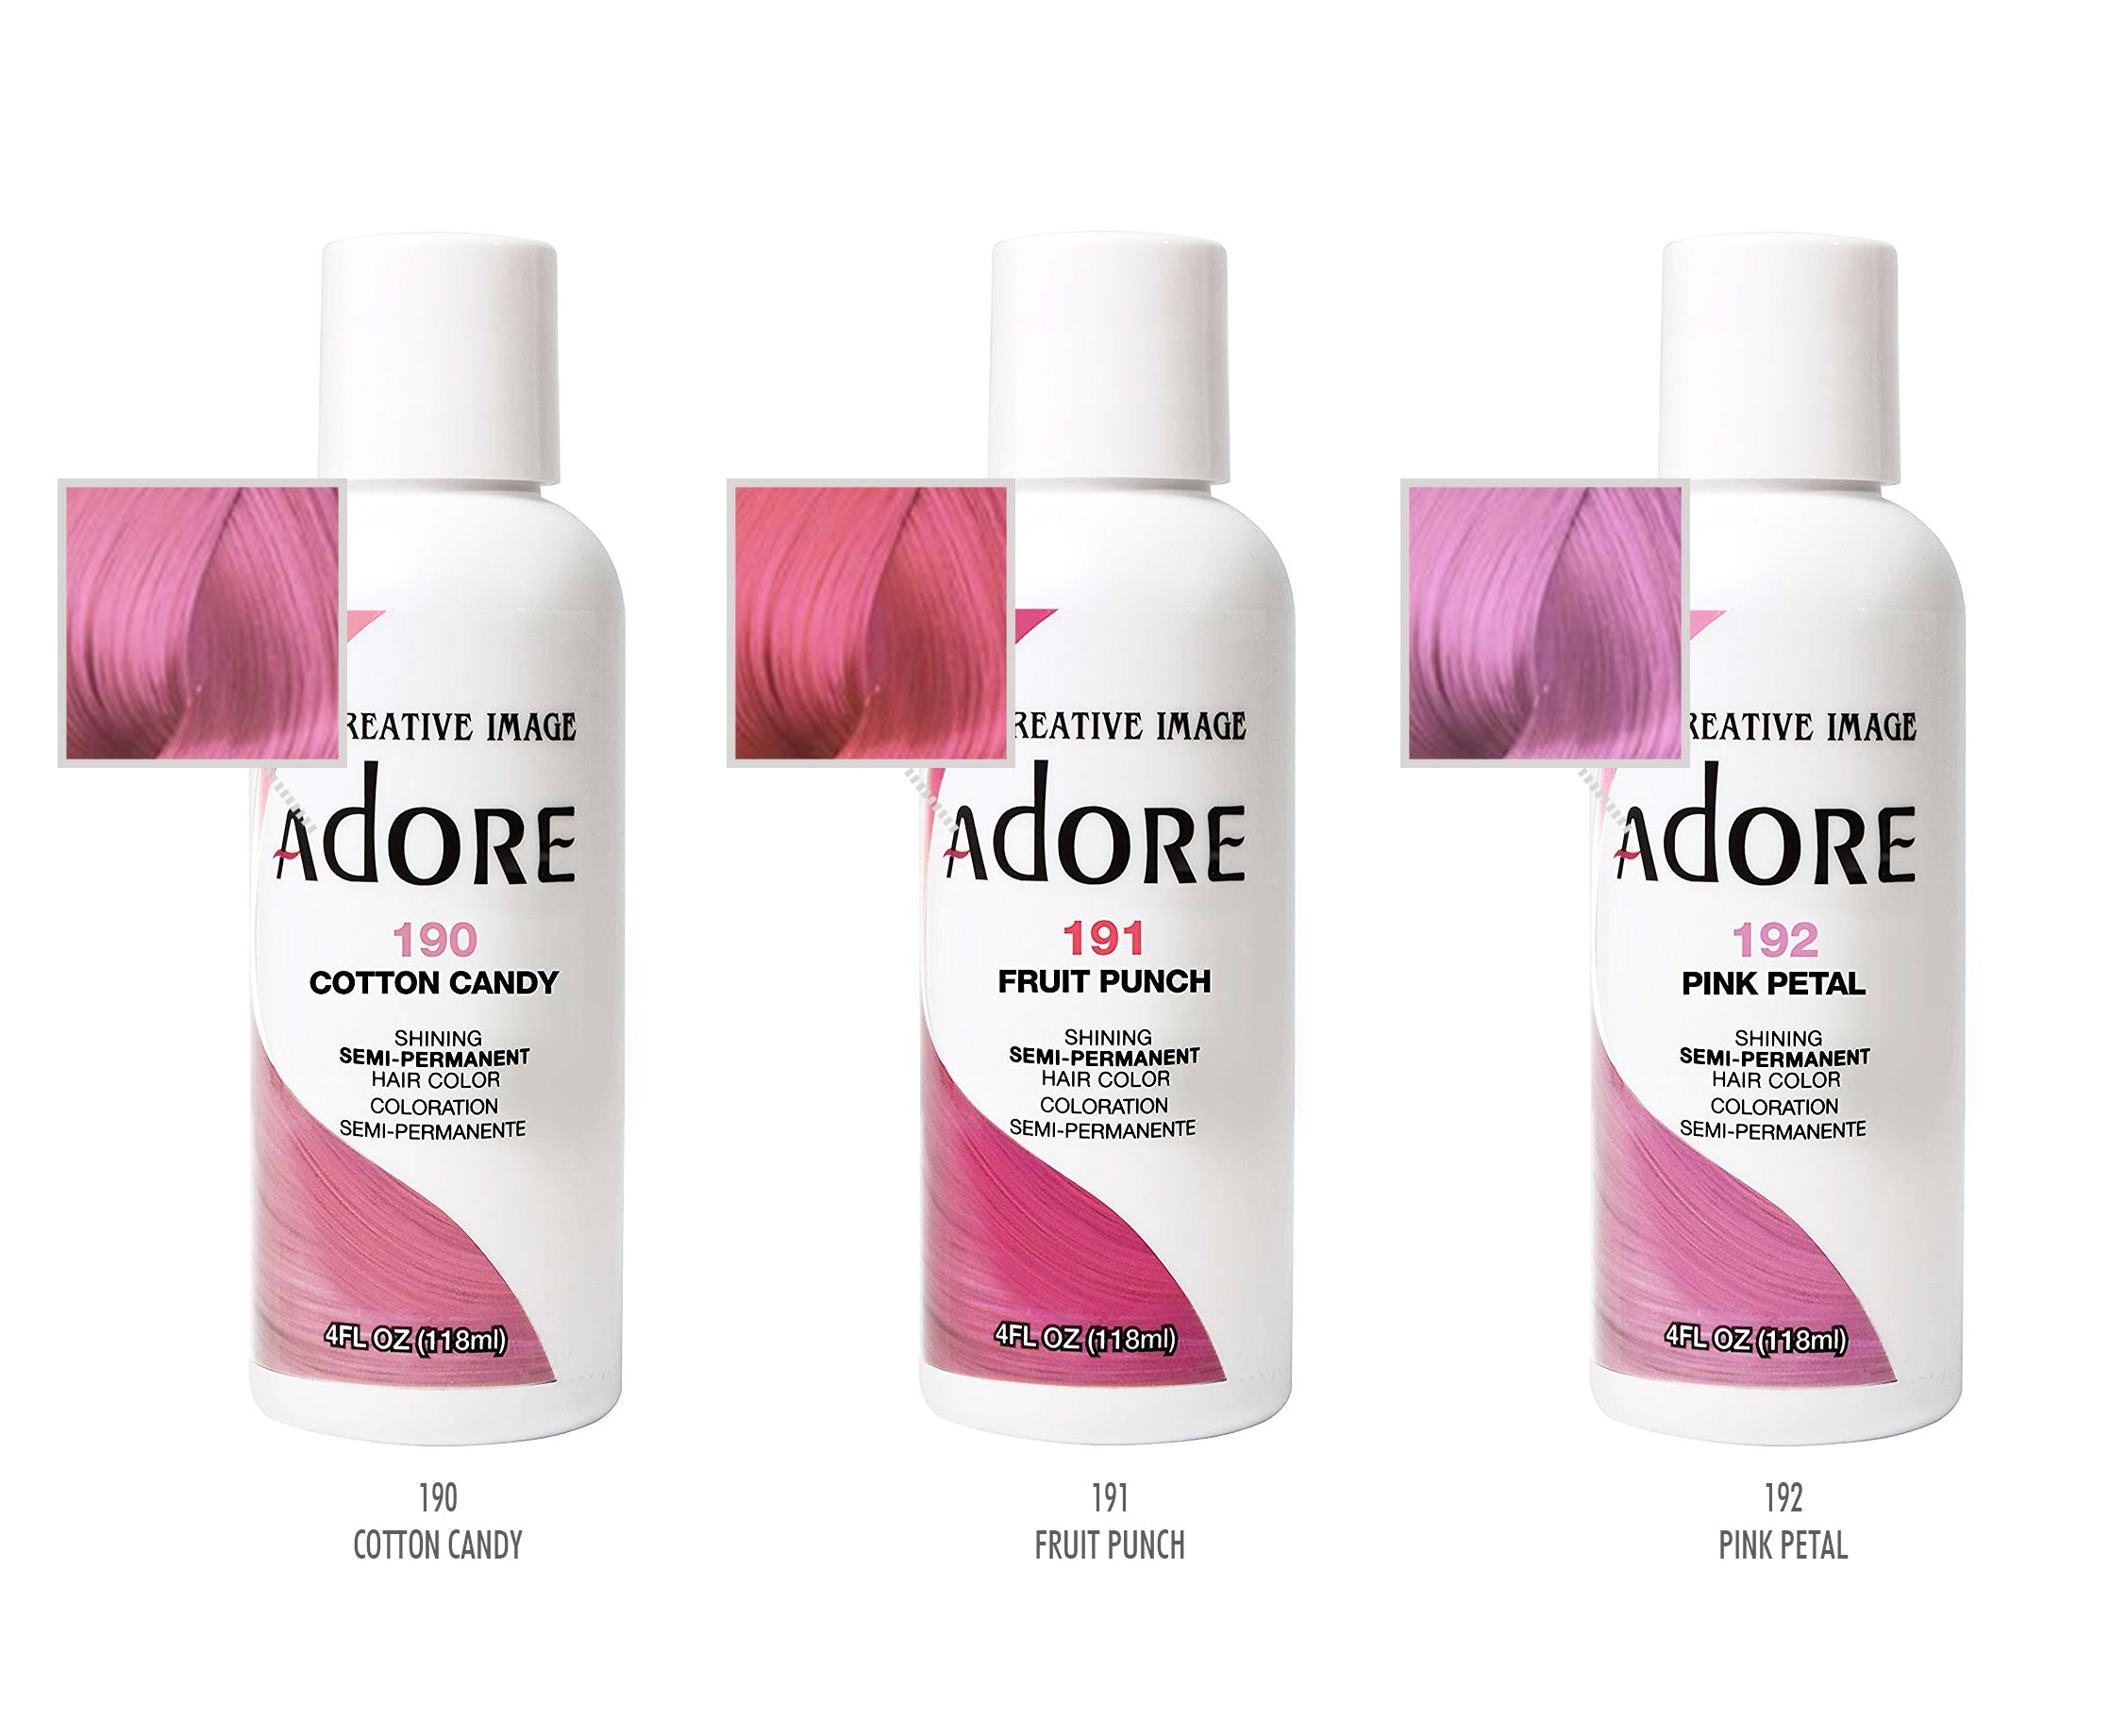 Adore Shining Semi Permanent Hair Color 35 Colors Bsw